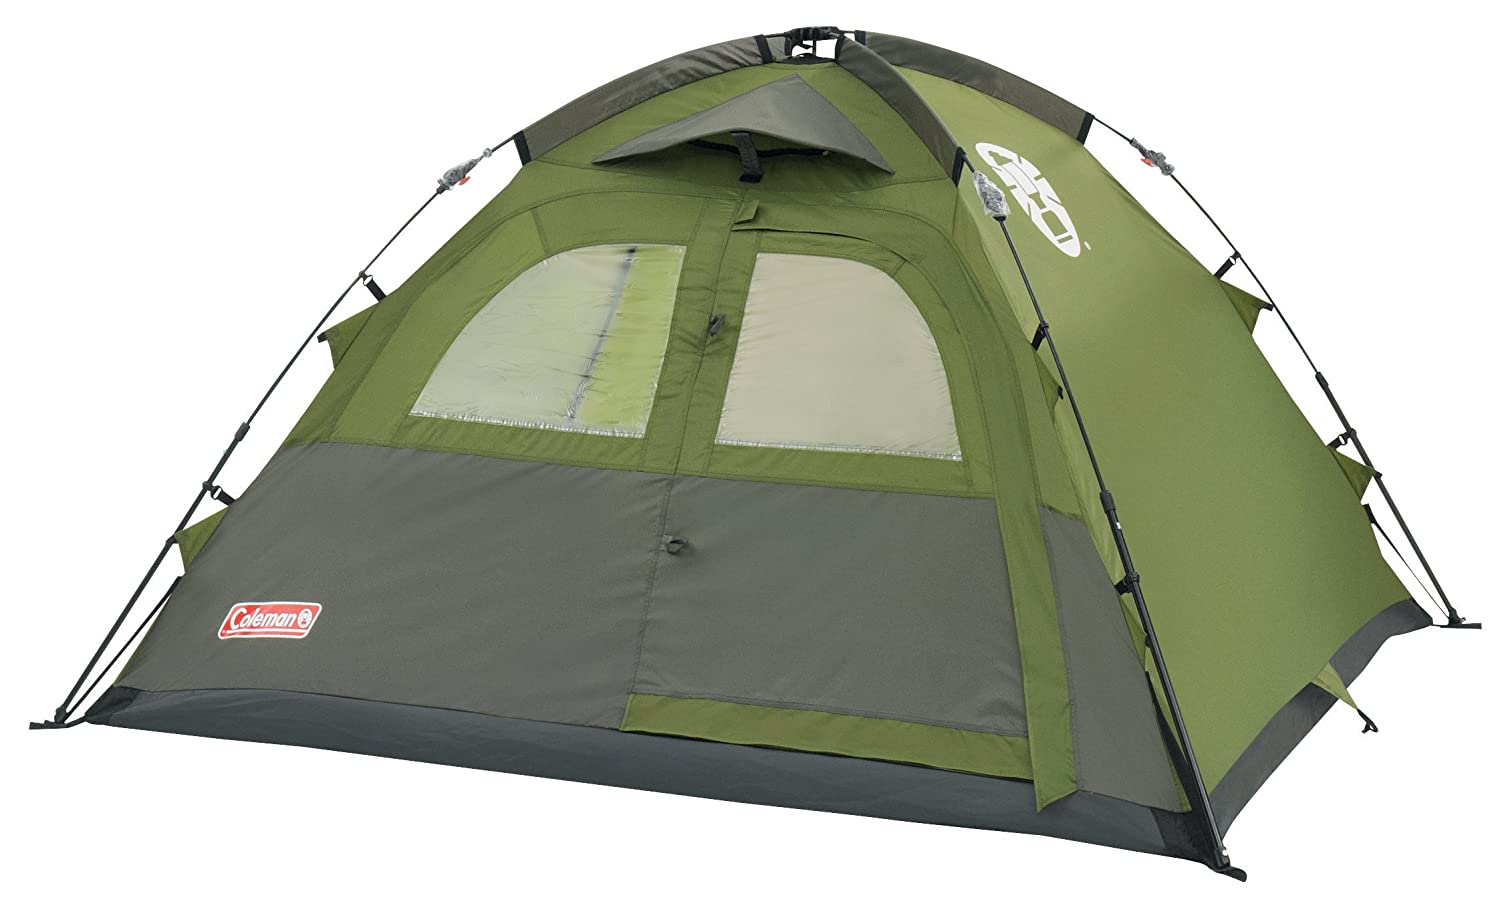 Coleman Weatherproof Instant Tourer Unisex Outdoor Dome Tent Amazon.co.uk Sports u0026 Outdoors  sc 1 st  Amazon UK & Coleman Weatherproof Instant Tourer Unisex Outdoor Dome Tent ...